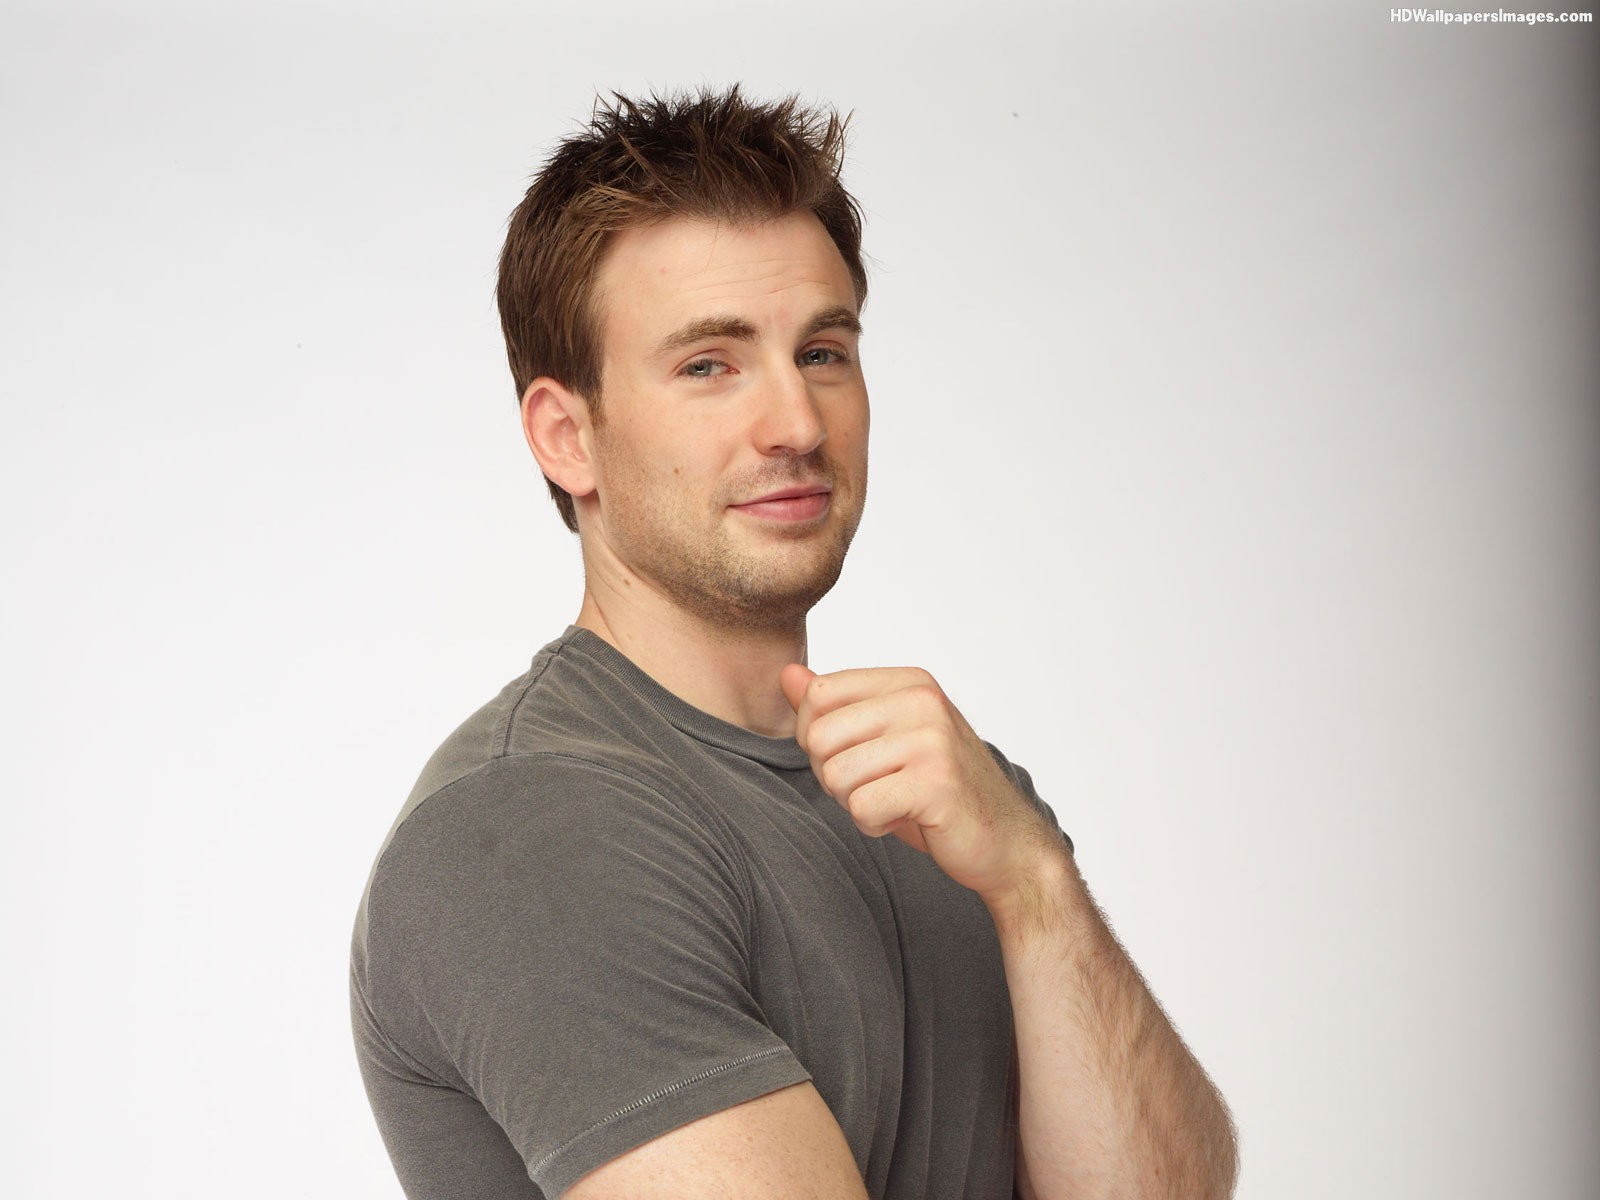 chris-evans-high-quality-wallpapers